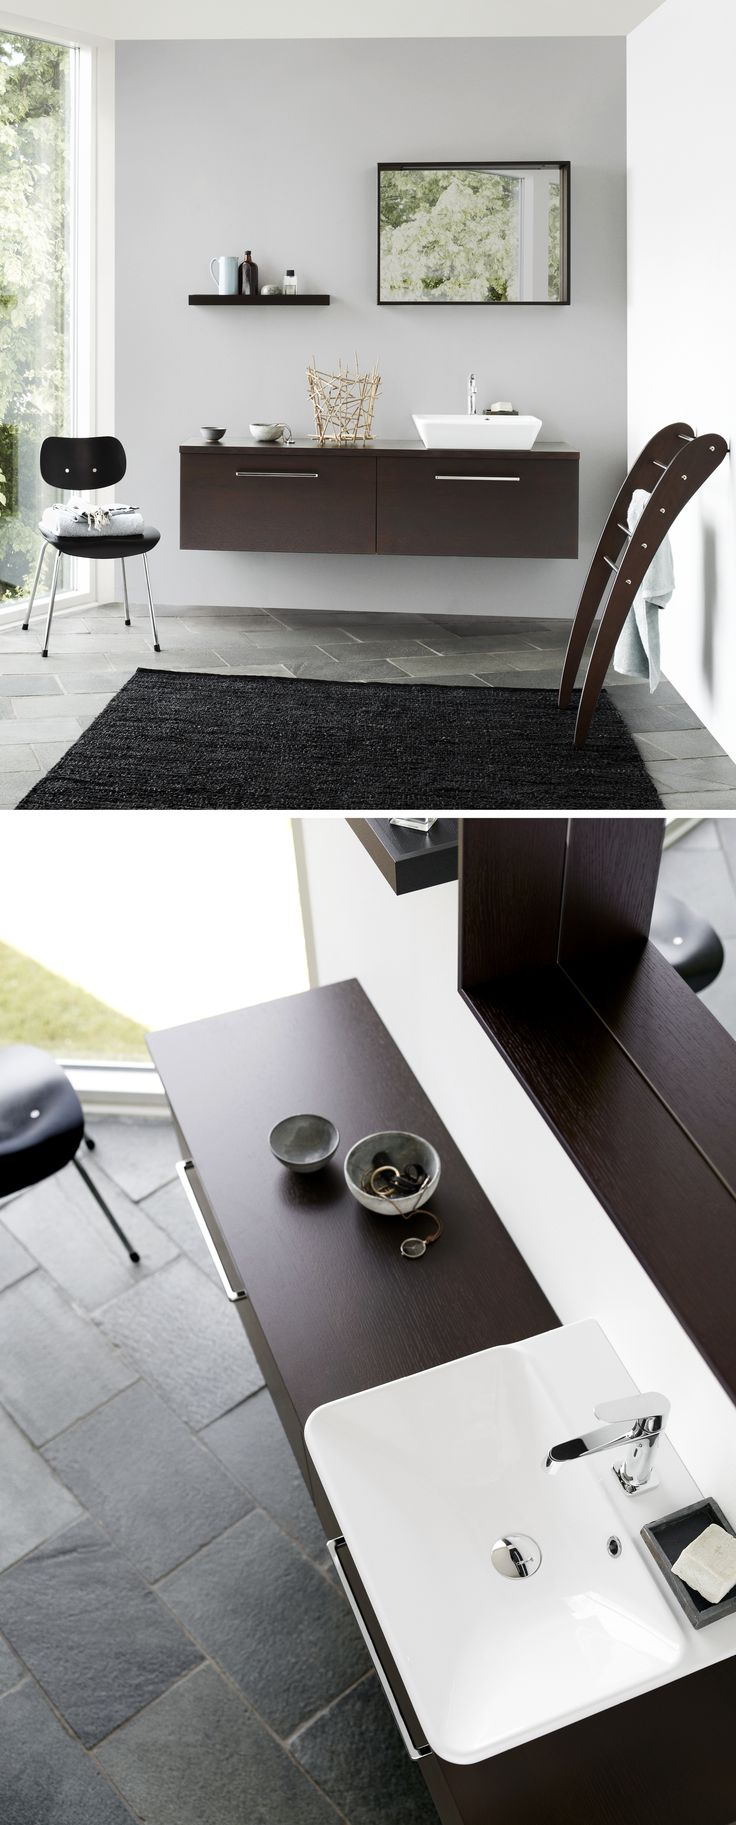 Elegant functionality does not have to be more complicated than that. Lots of elbowroom and room for your creativity.